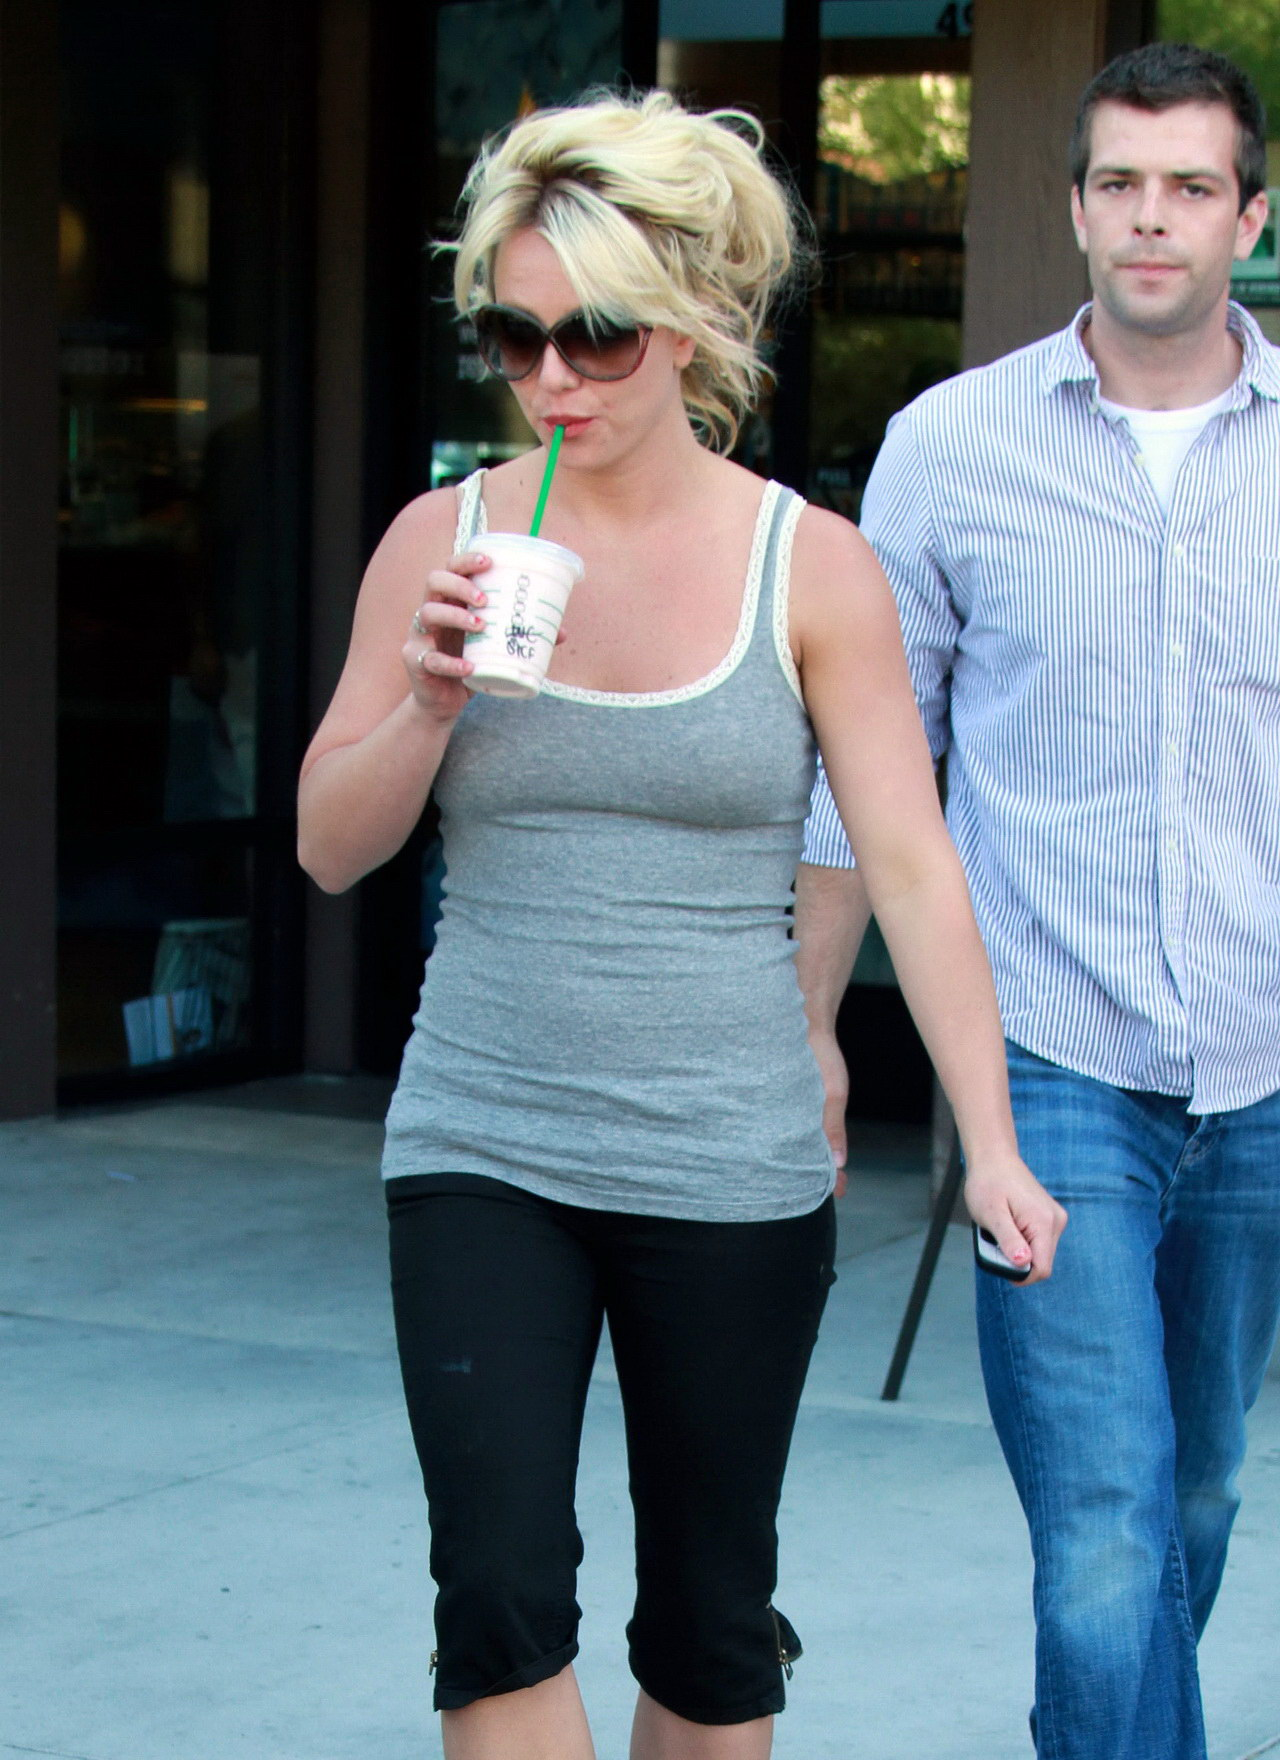 Always try britney spears busty